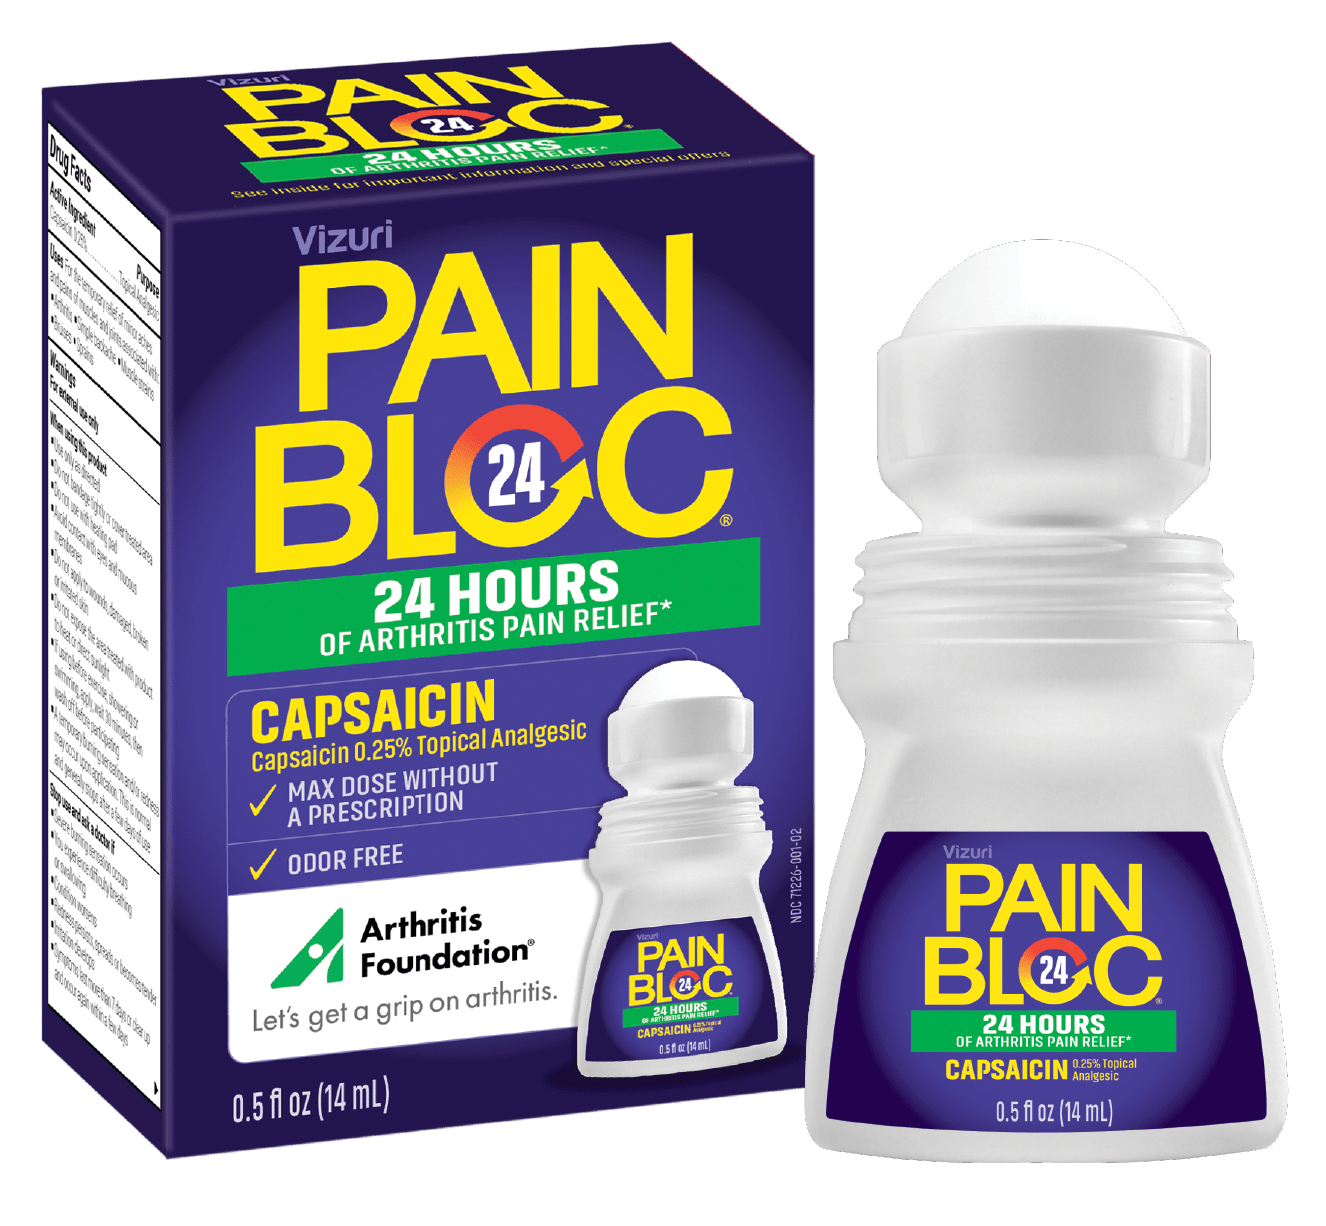 Painbloc Packaging